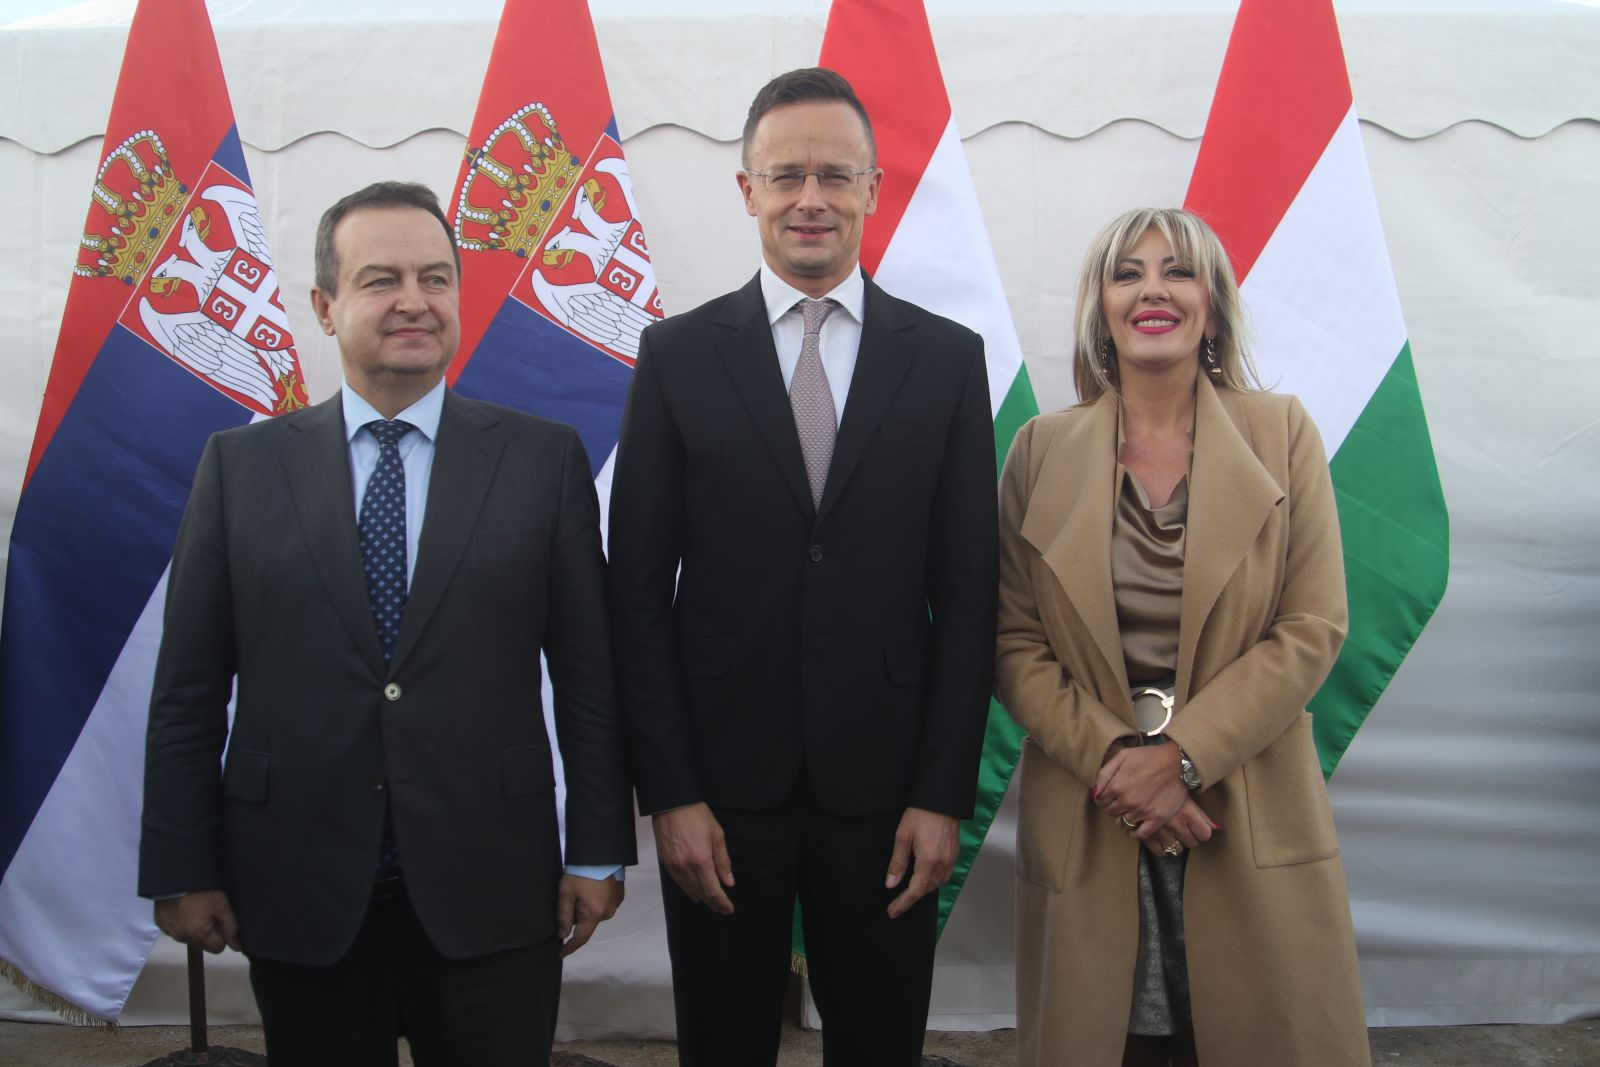 J. Joksimović: The new border crossing is evidence of carrying for the interests of citizens